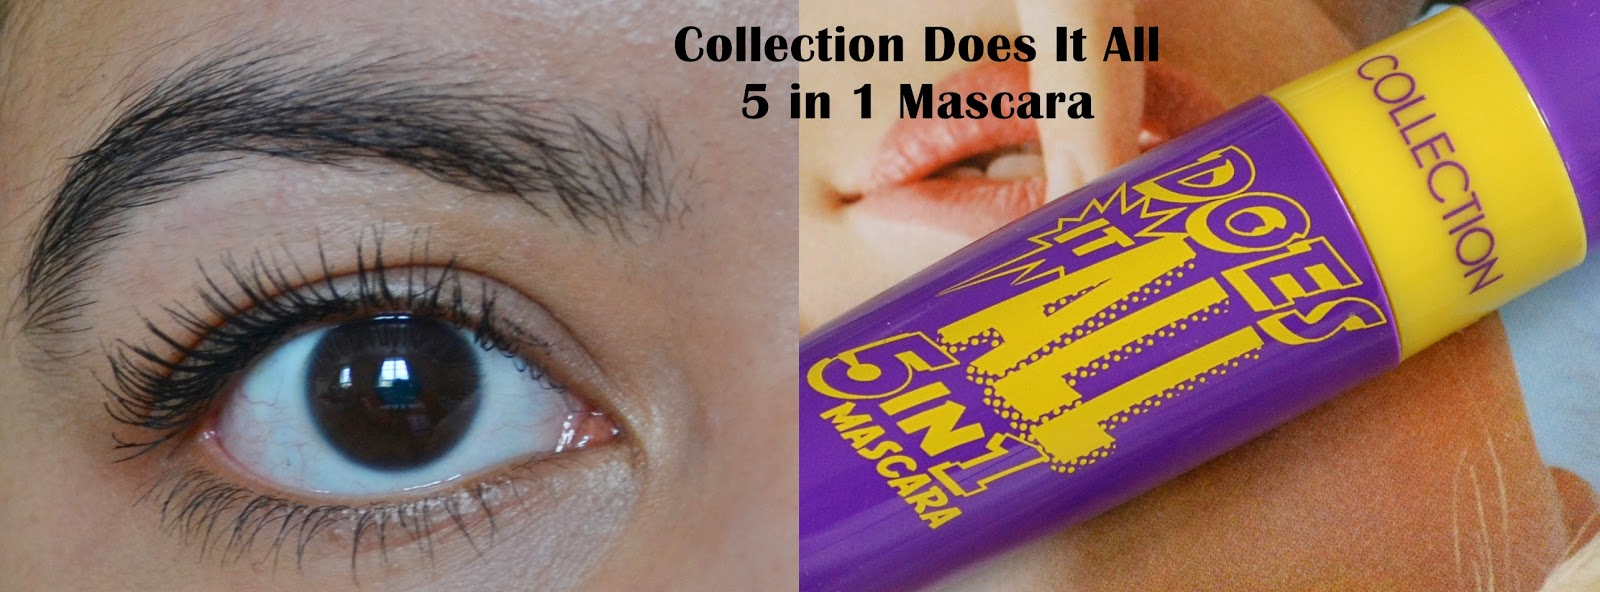 Collection Does It All 5 in 1 Mascara - Beauty by Eff